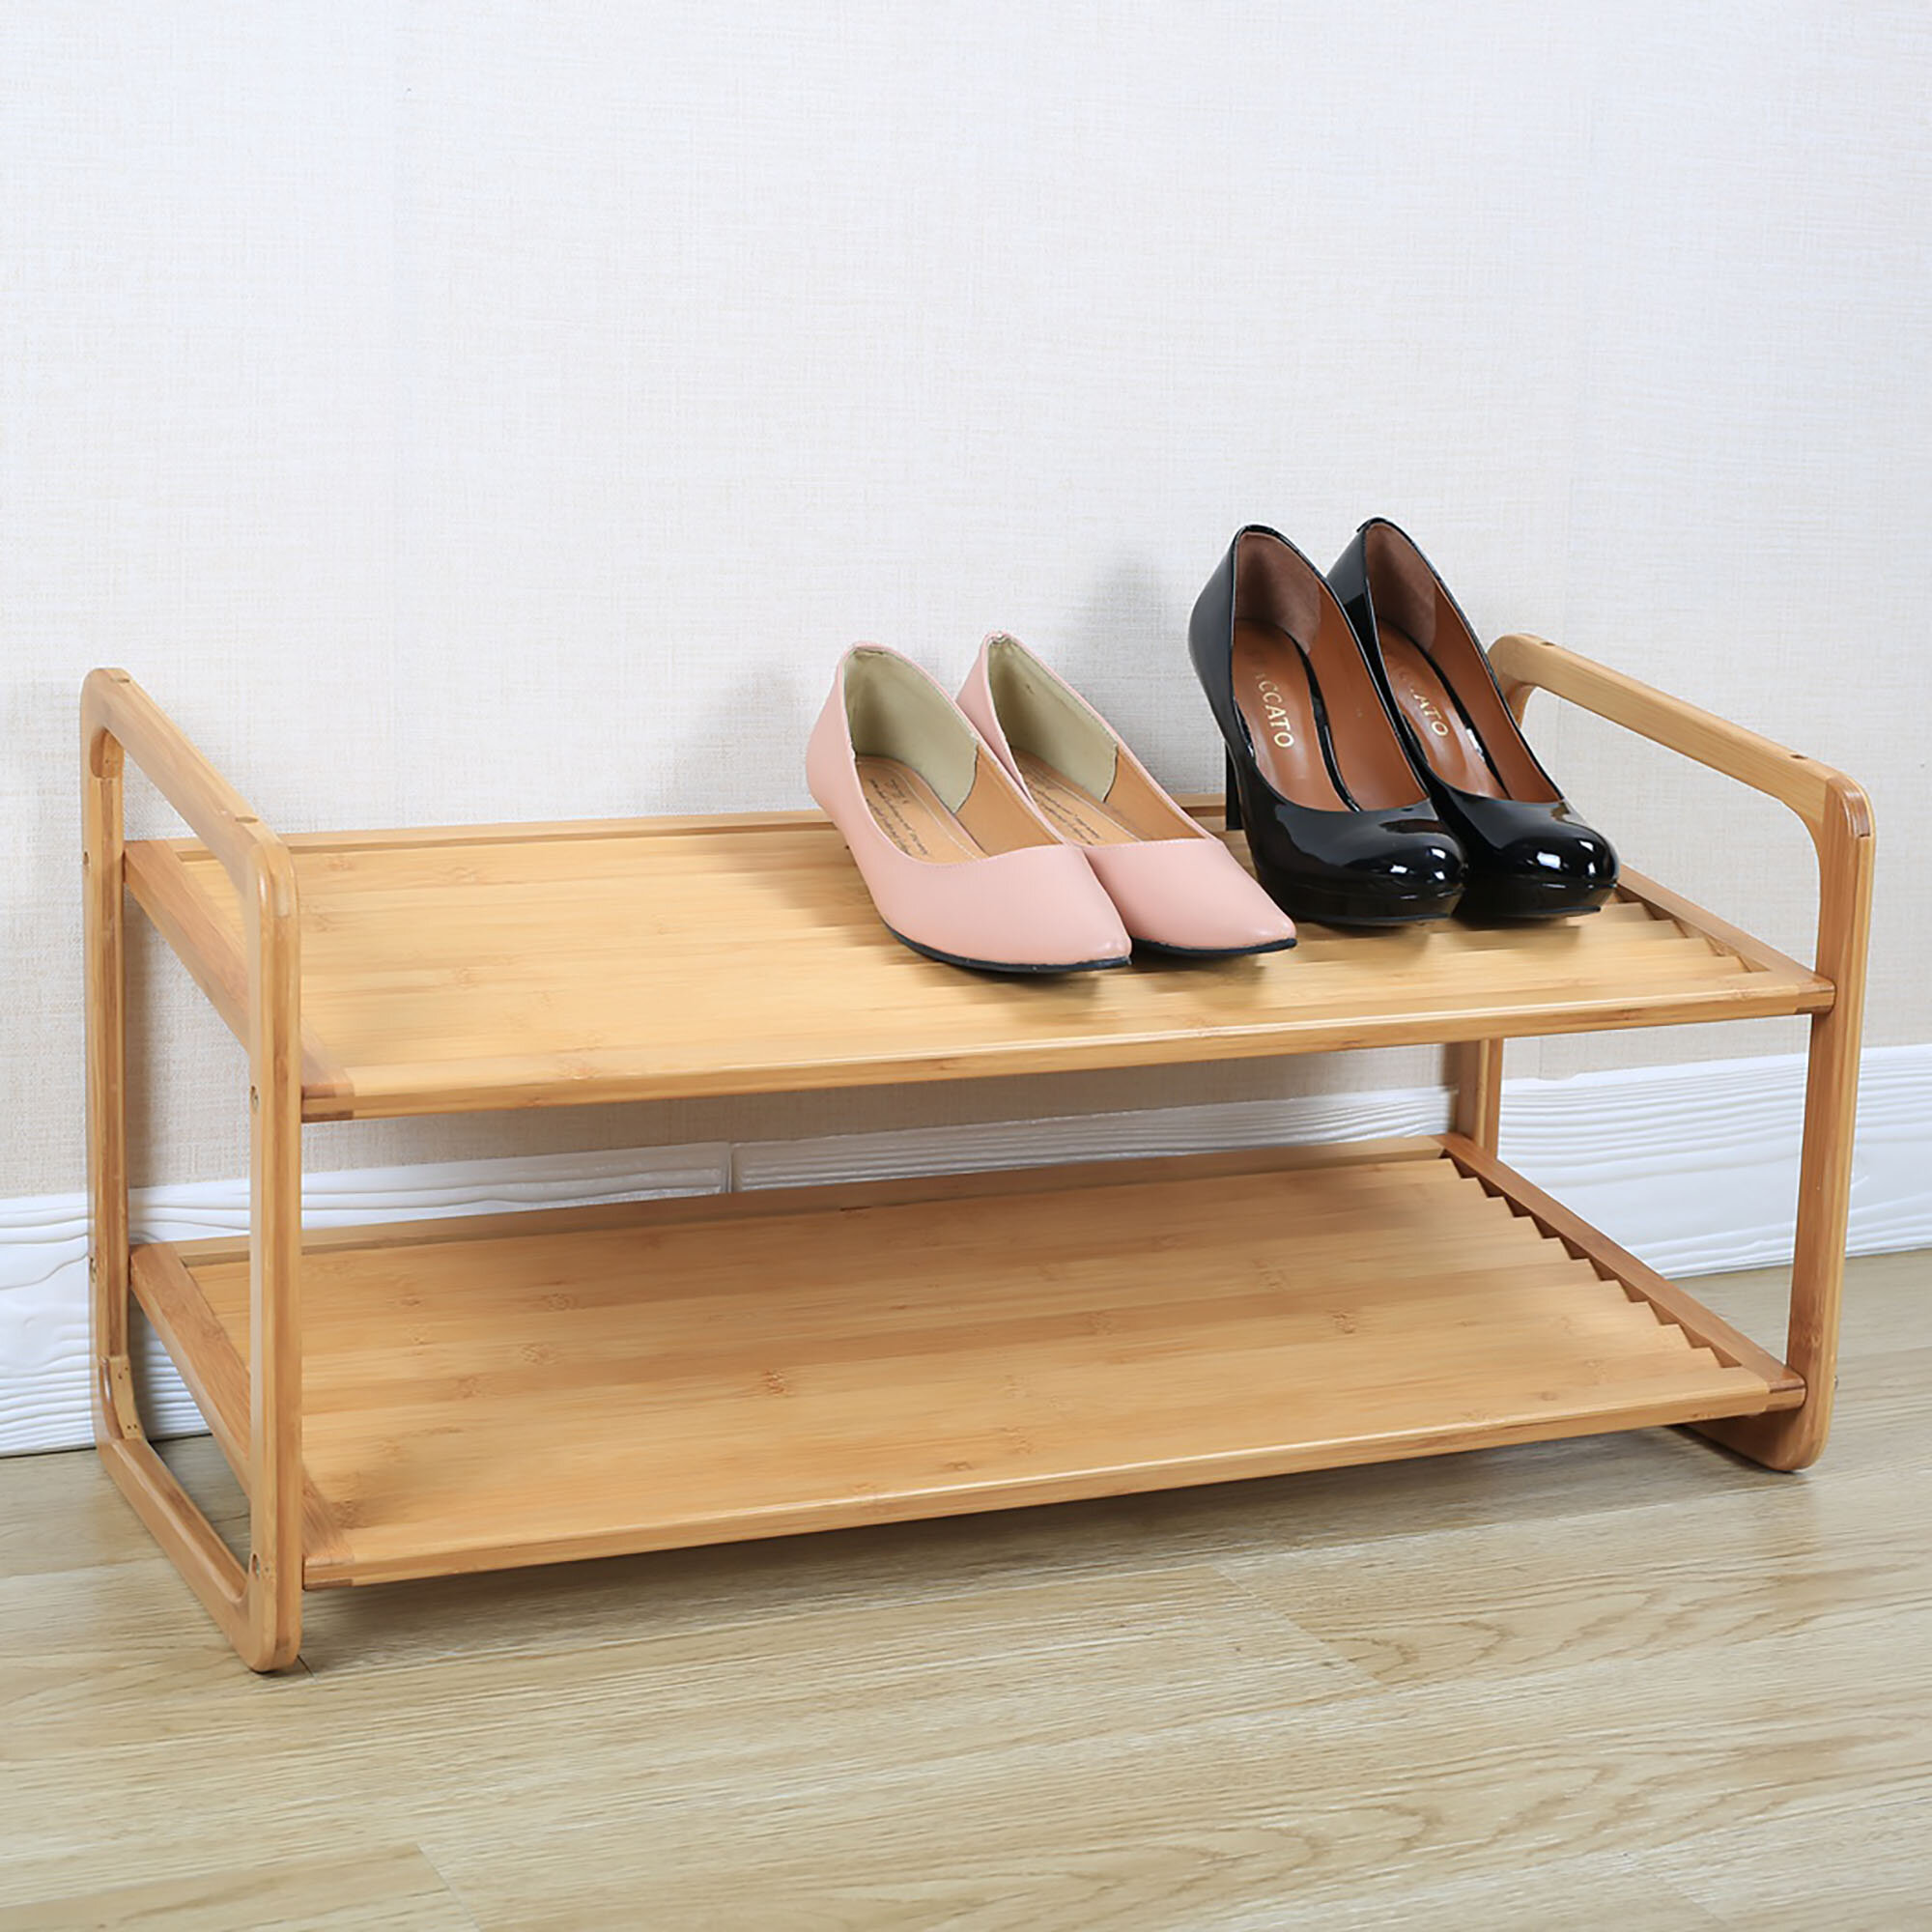 Rebrilliant 2-Tier Bamboo 8 Pair Shoe Rack BI164353 recommendations